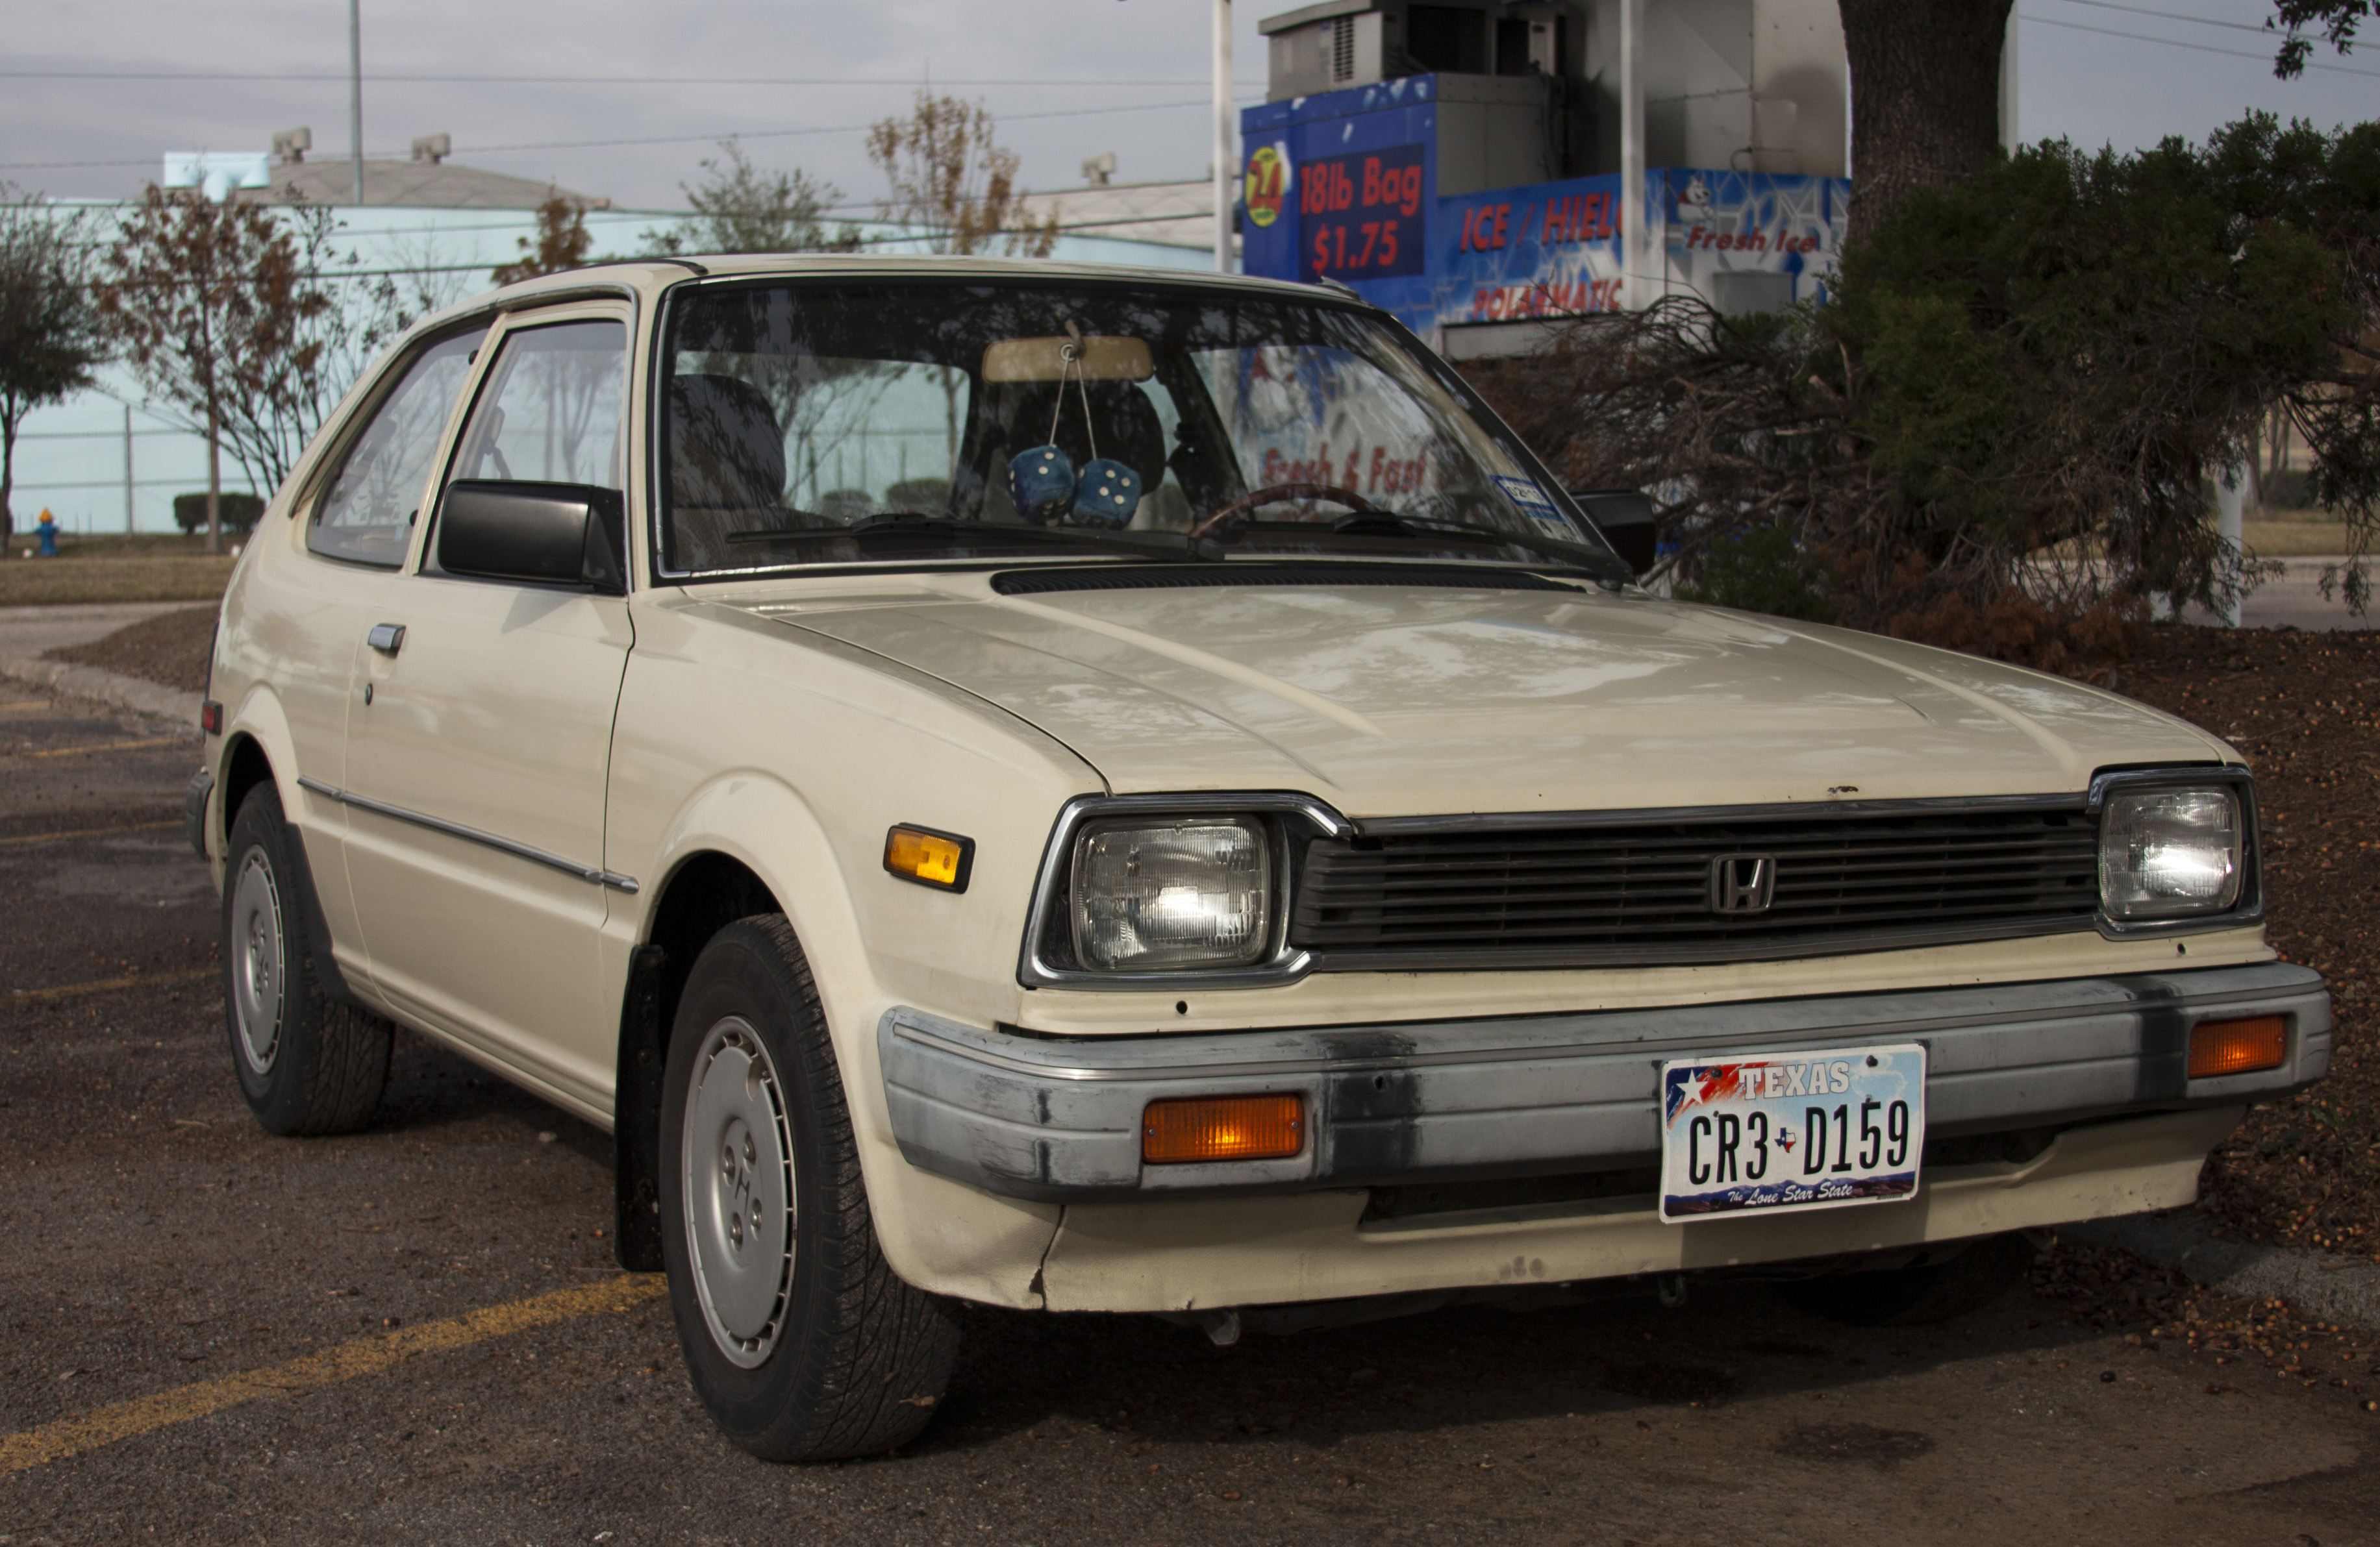 File:1982-1983 Honda Civic.jpg - Wikimedia Commons